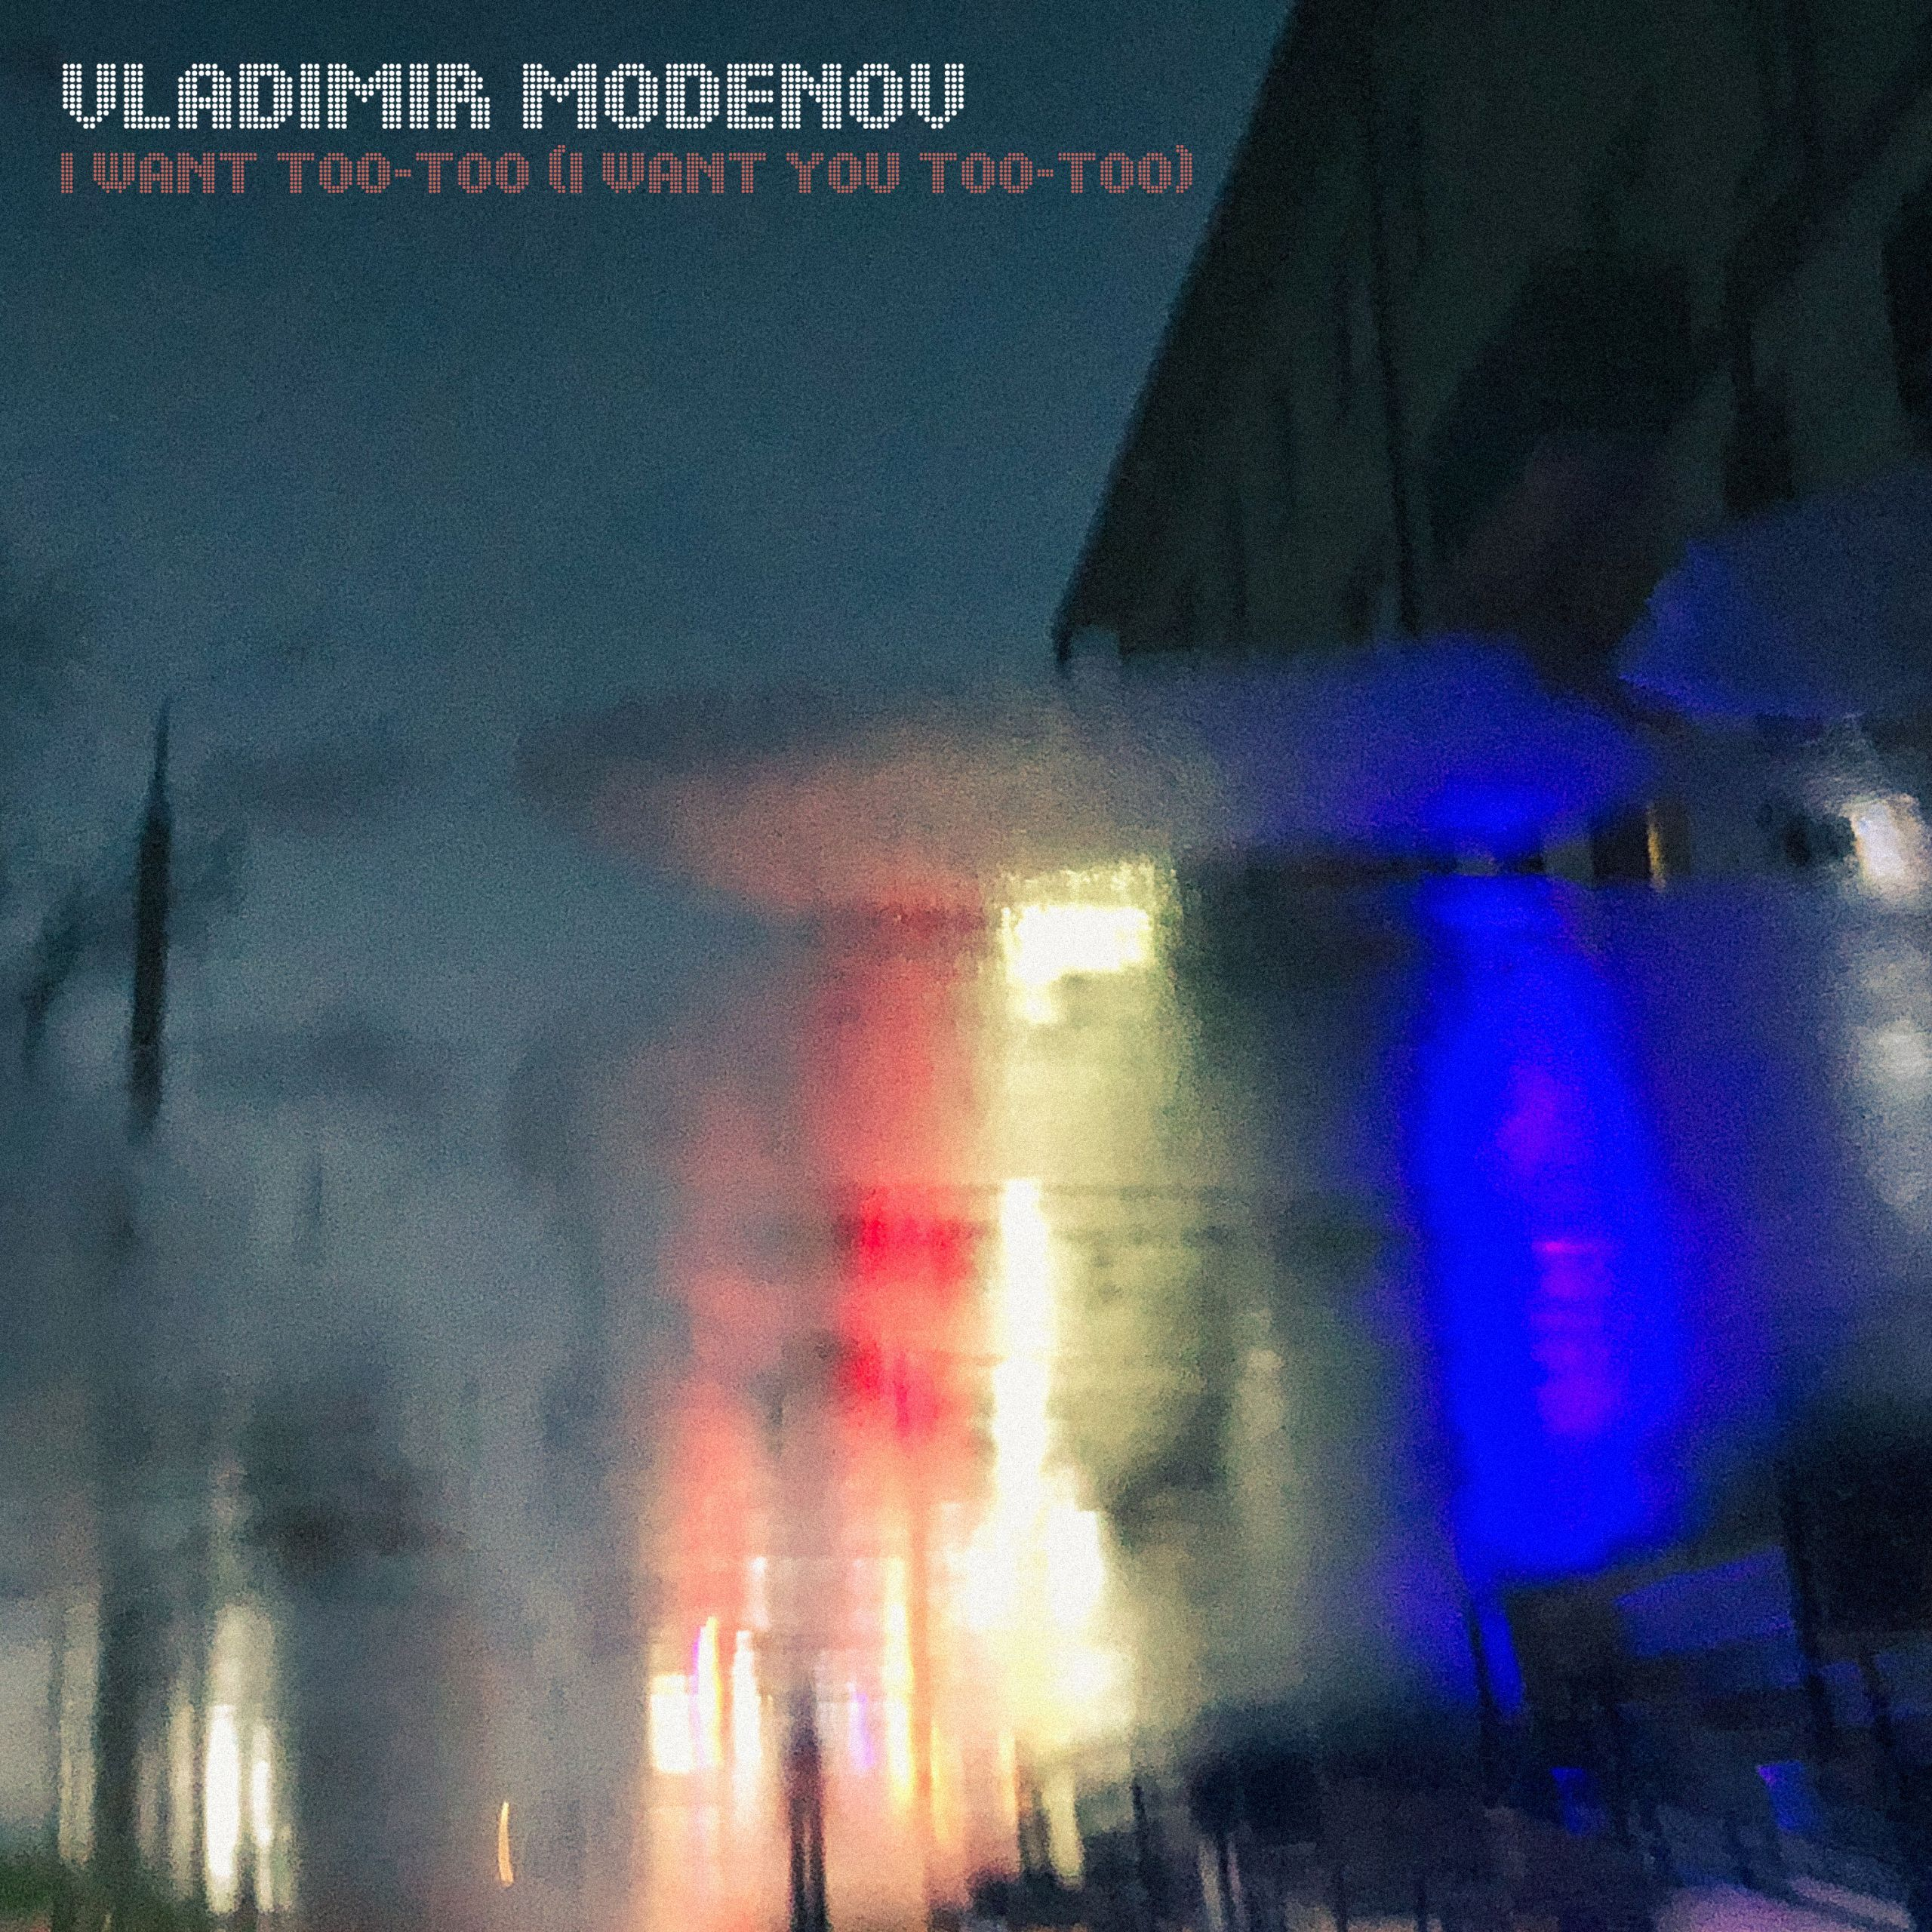 Vladimir Modenov — I Want Too-Too (I Want You Too-Too)